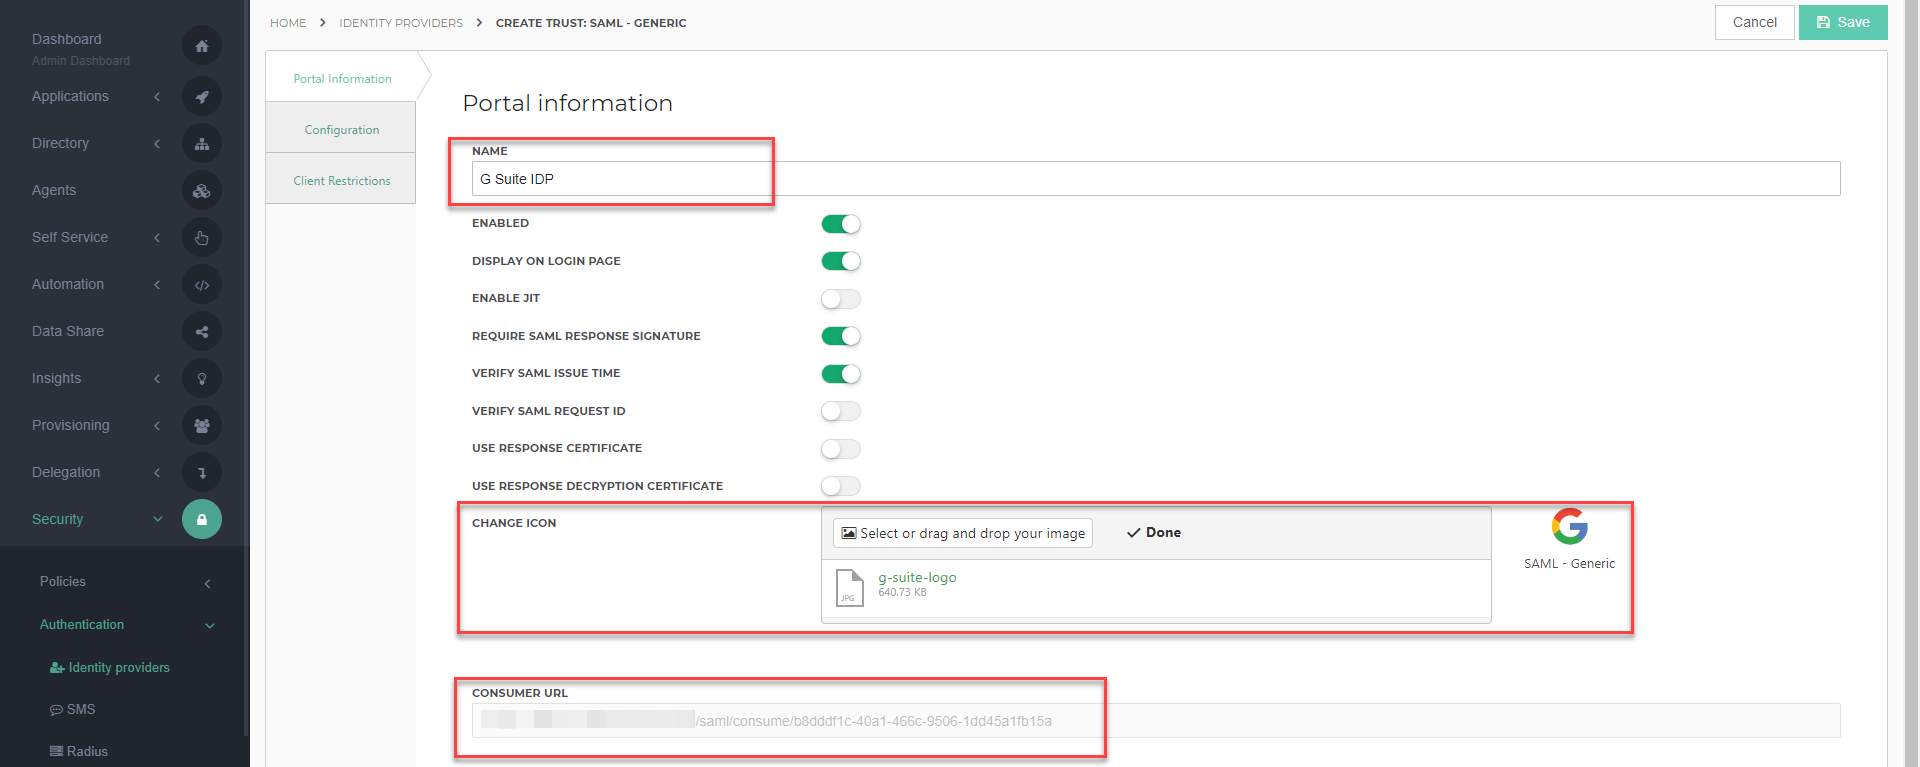 How to Configure Google G Suite as a SAML Identity Provider